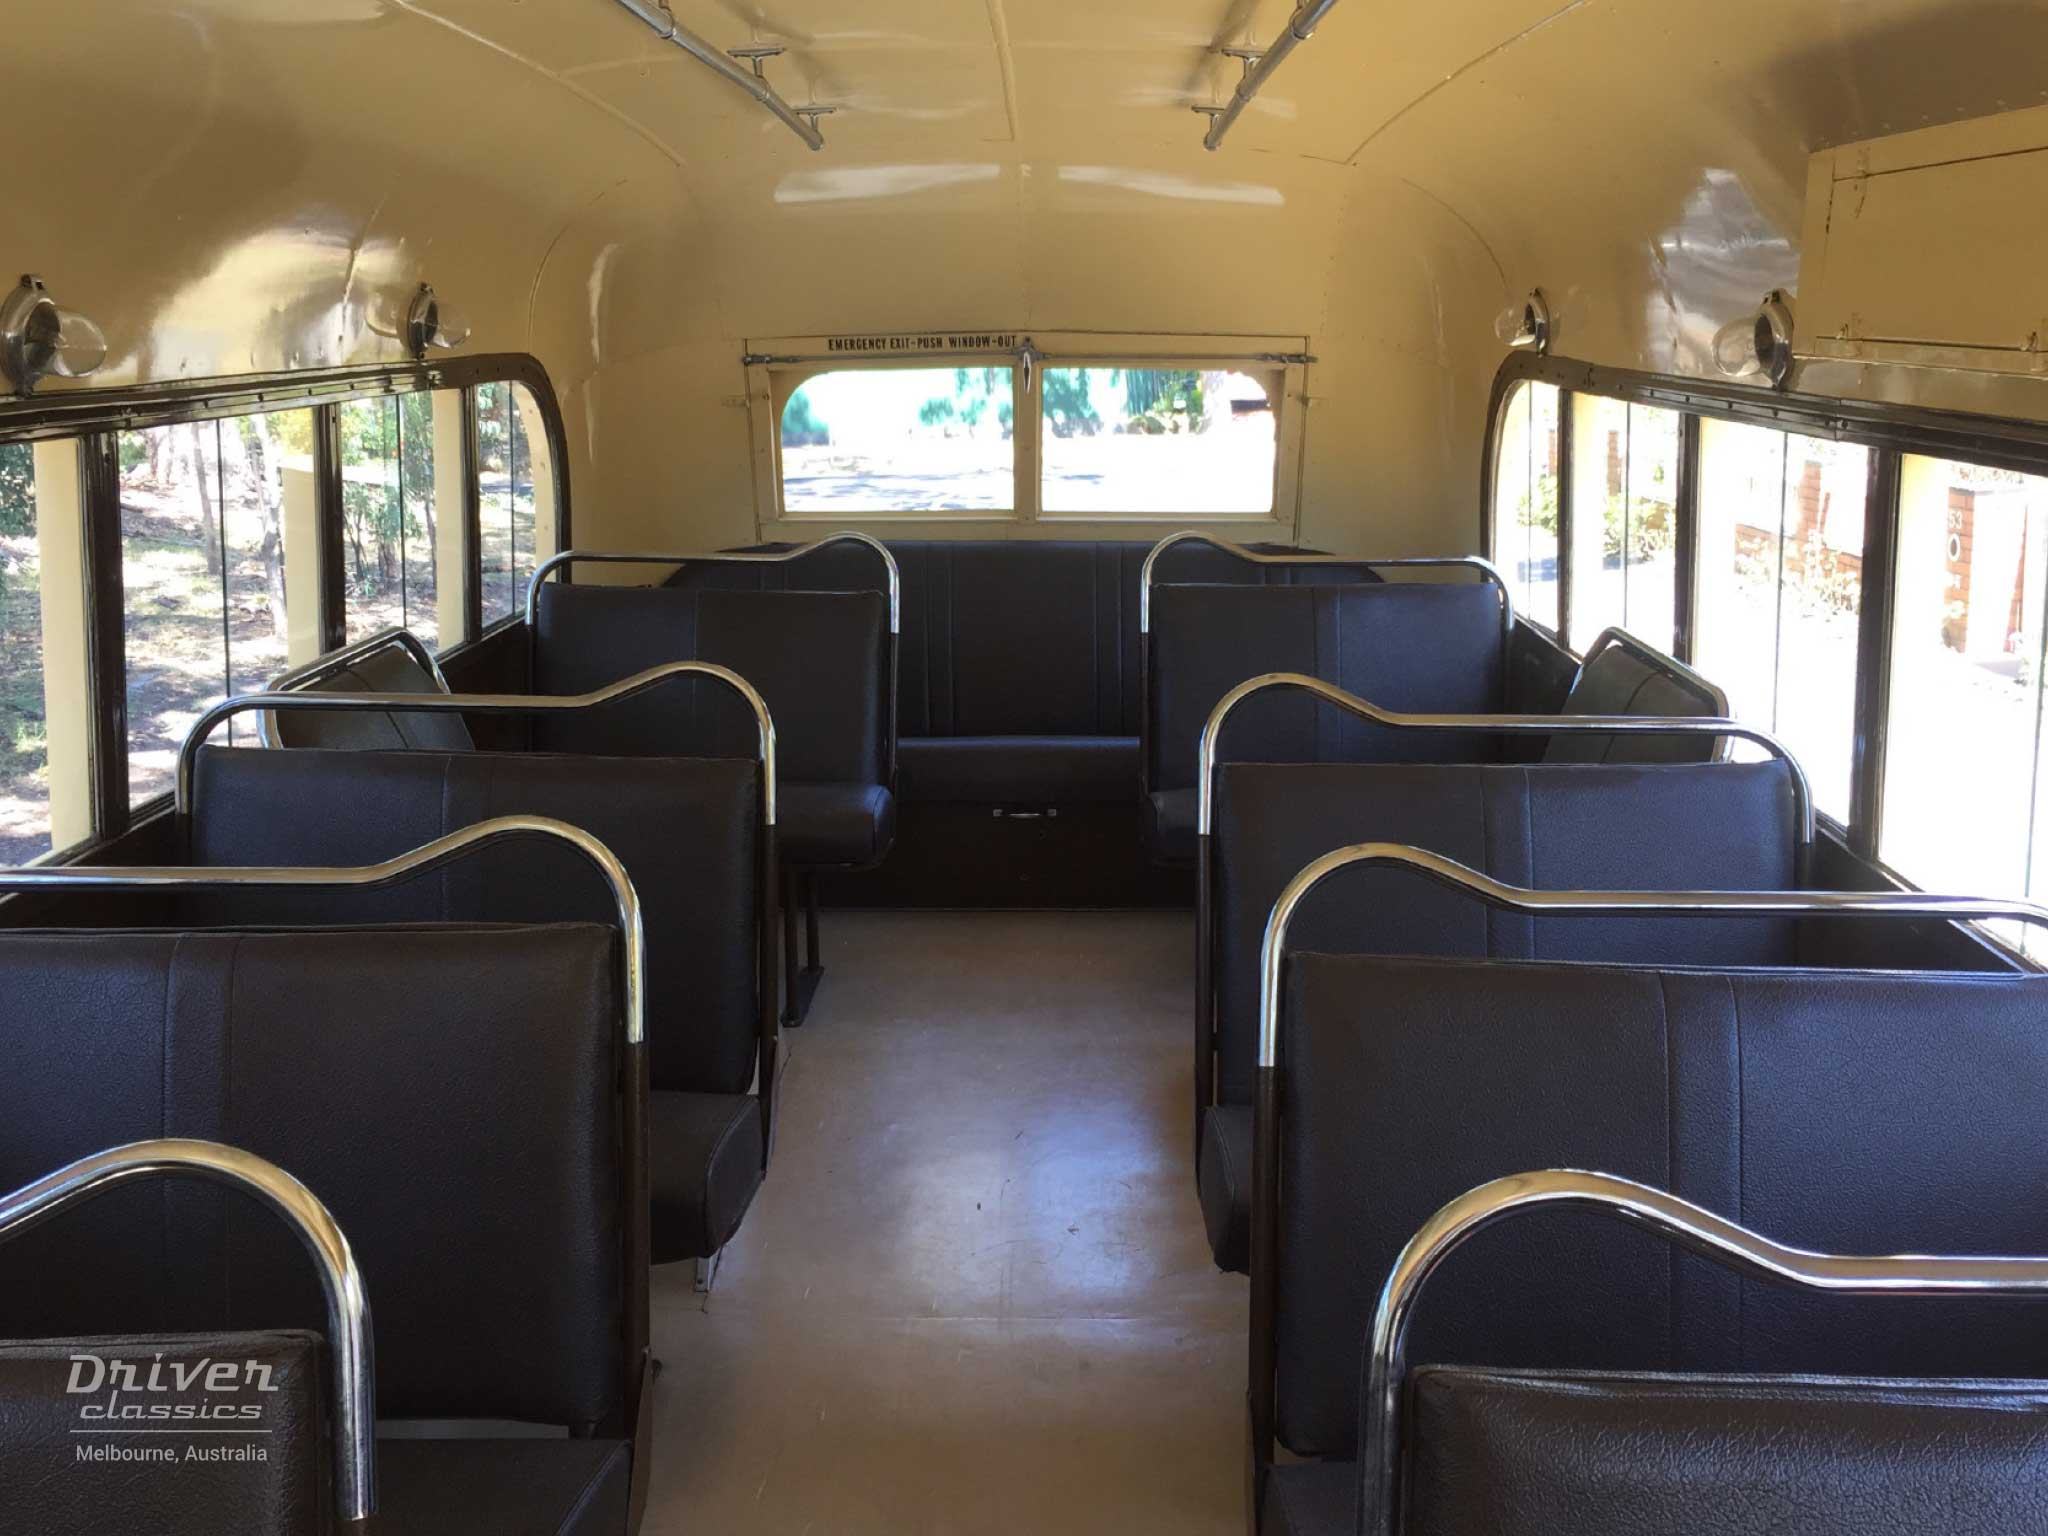 Bedford OB bus, 1946 model, interior and seats